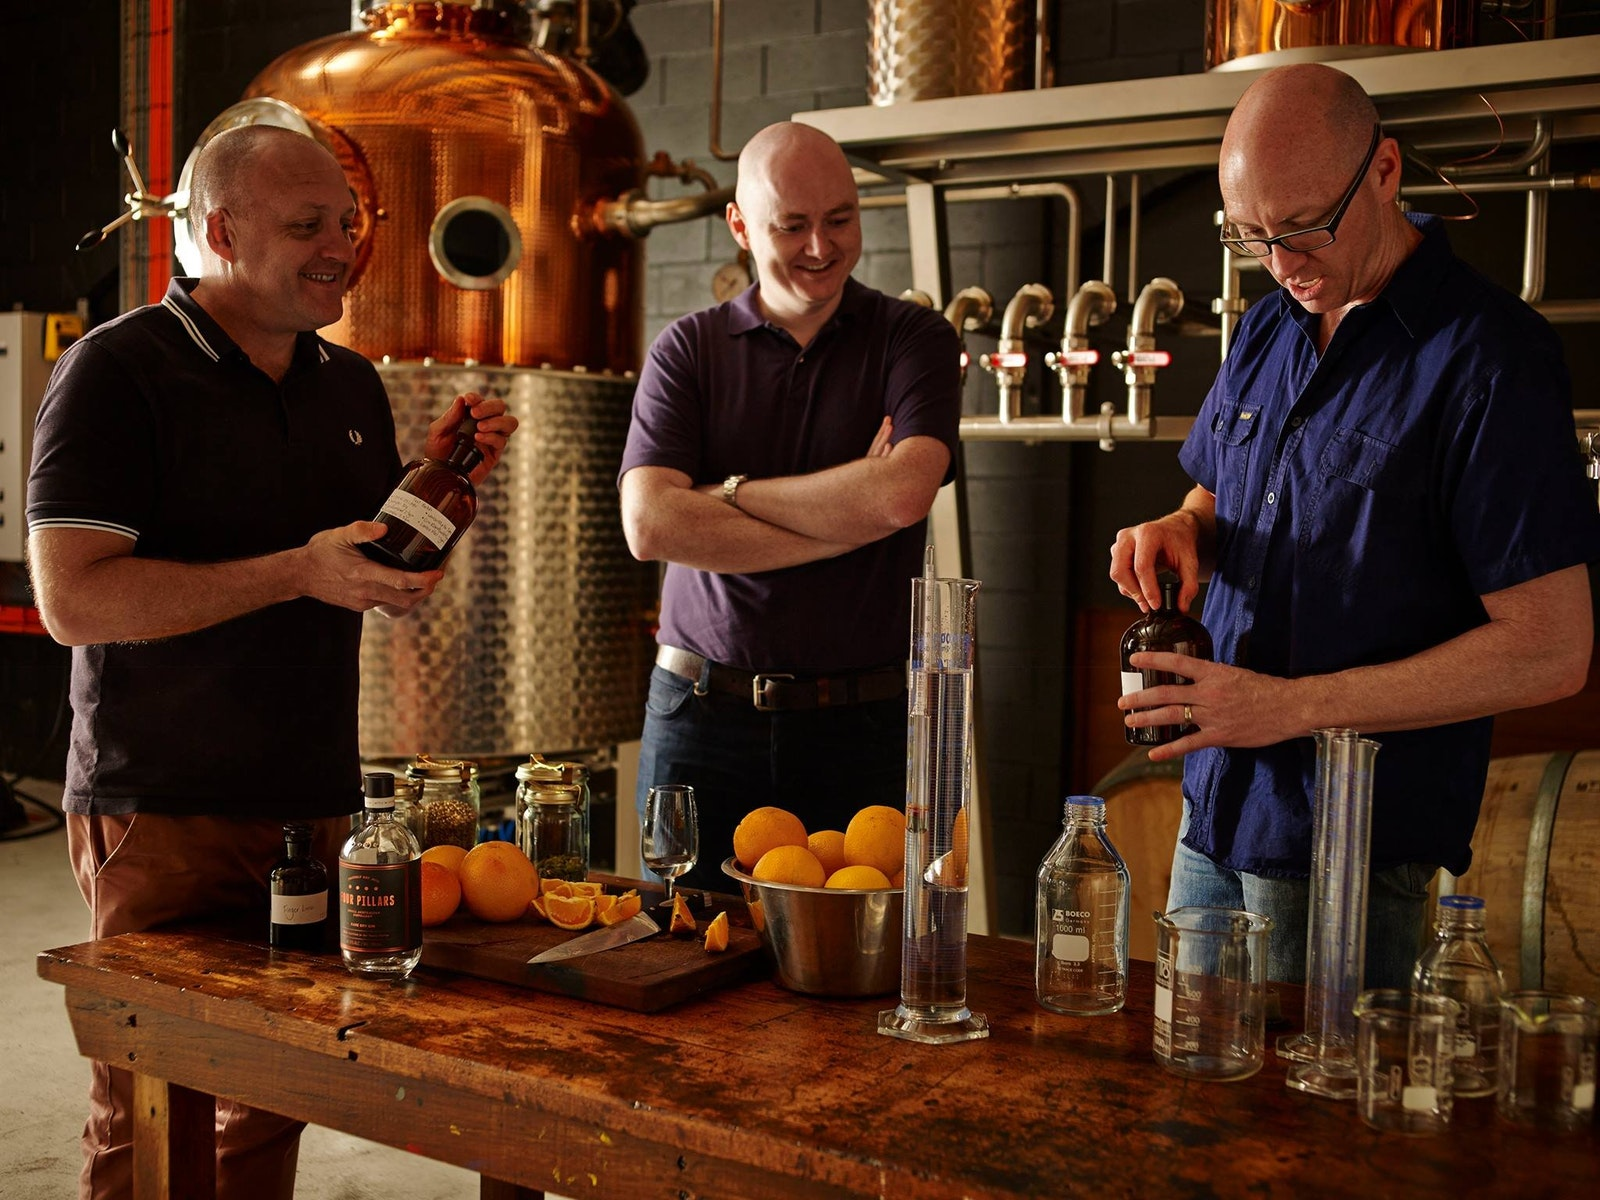 Tasting the Gin at Four Pillars